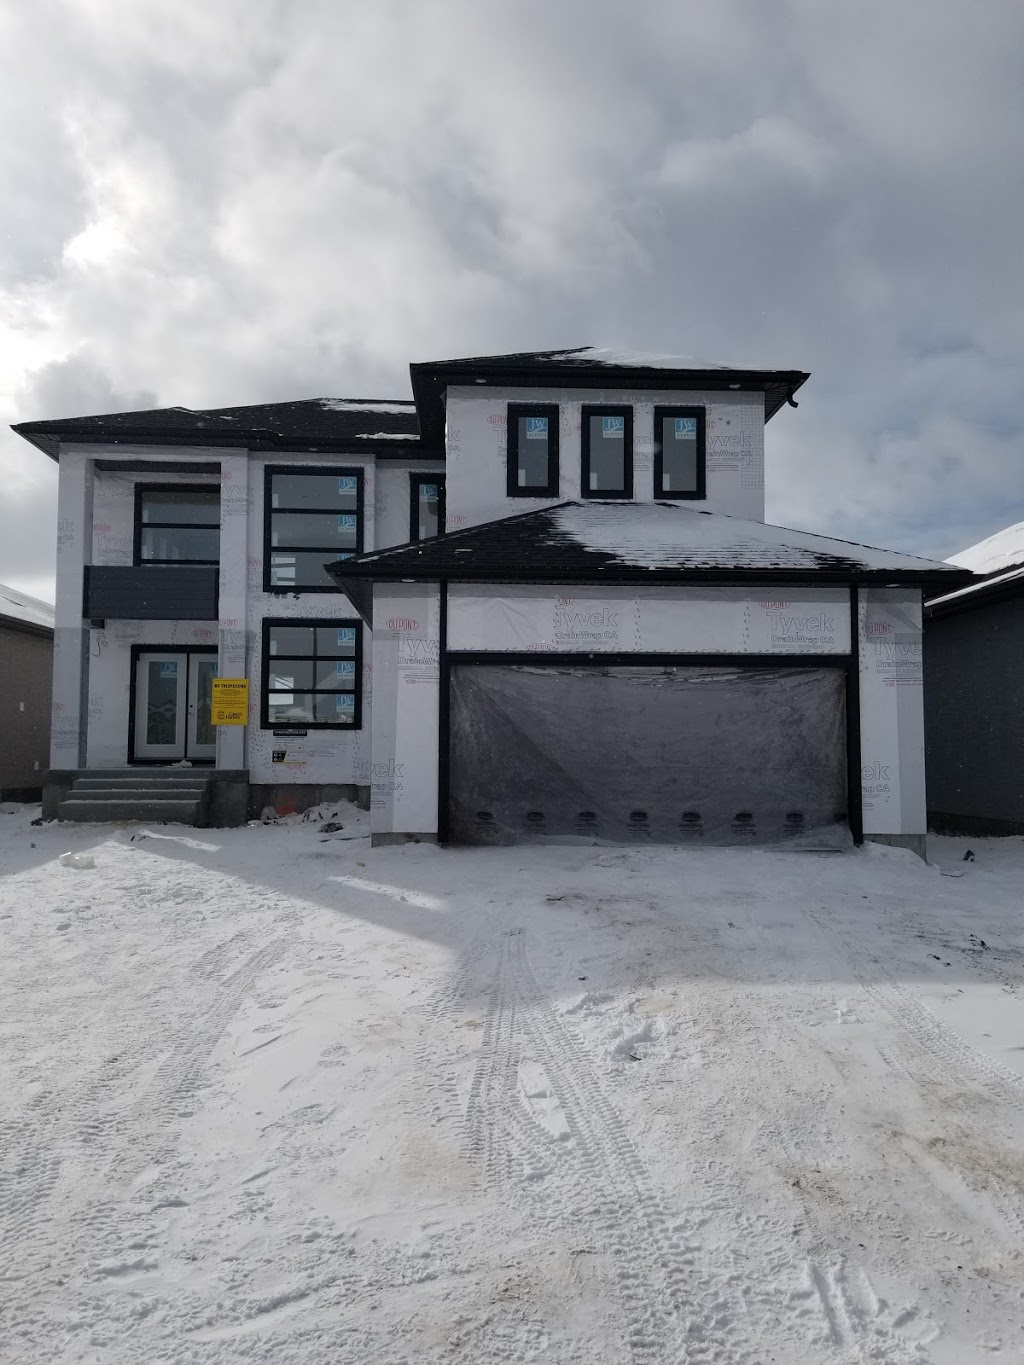 Up Front Exteriors Sales Svc 45 Havelock Ave Winnipeg Mb R2m 1h1 Canada